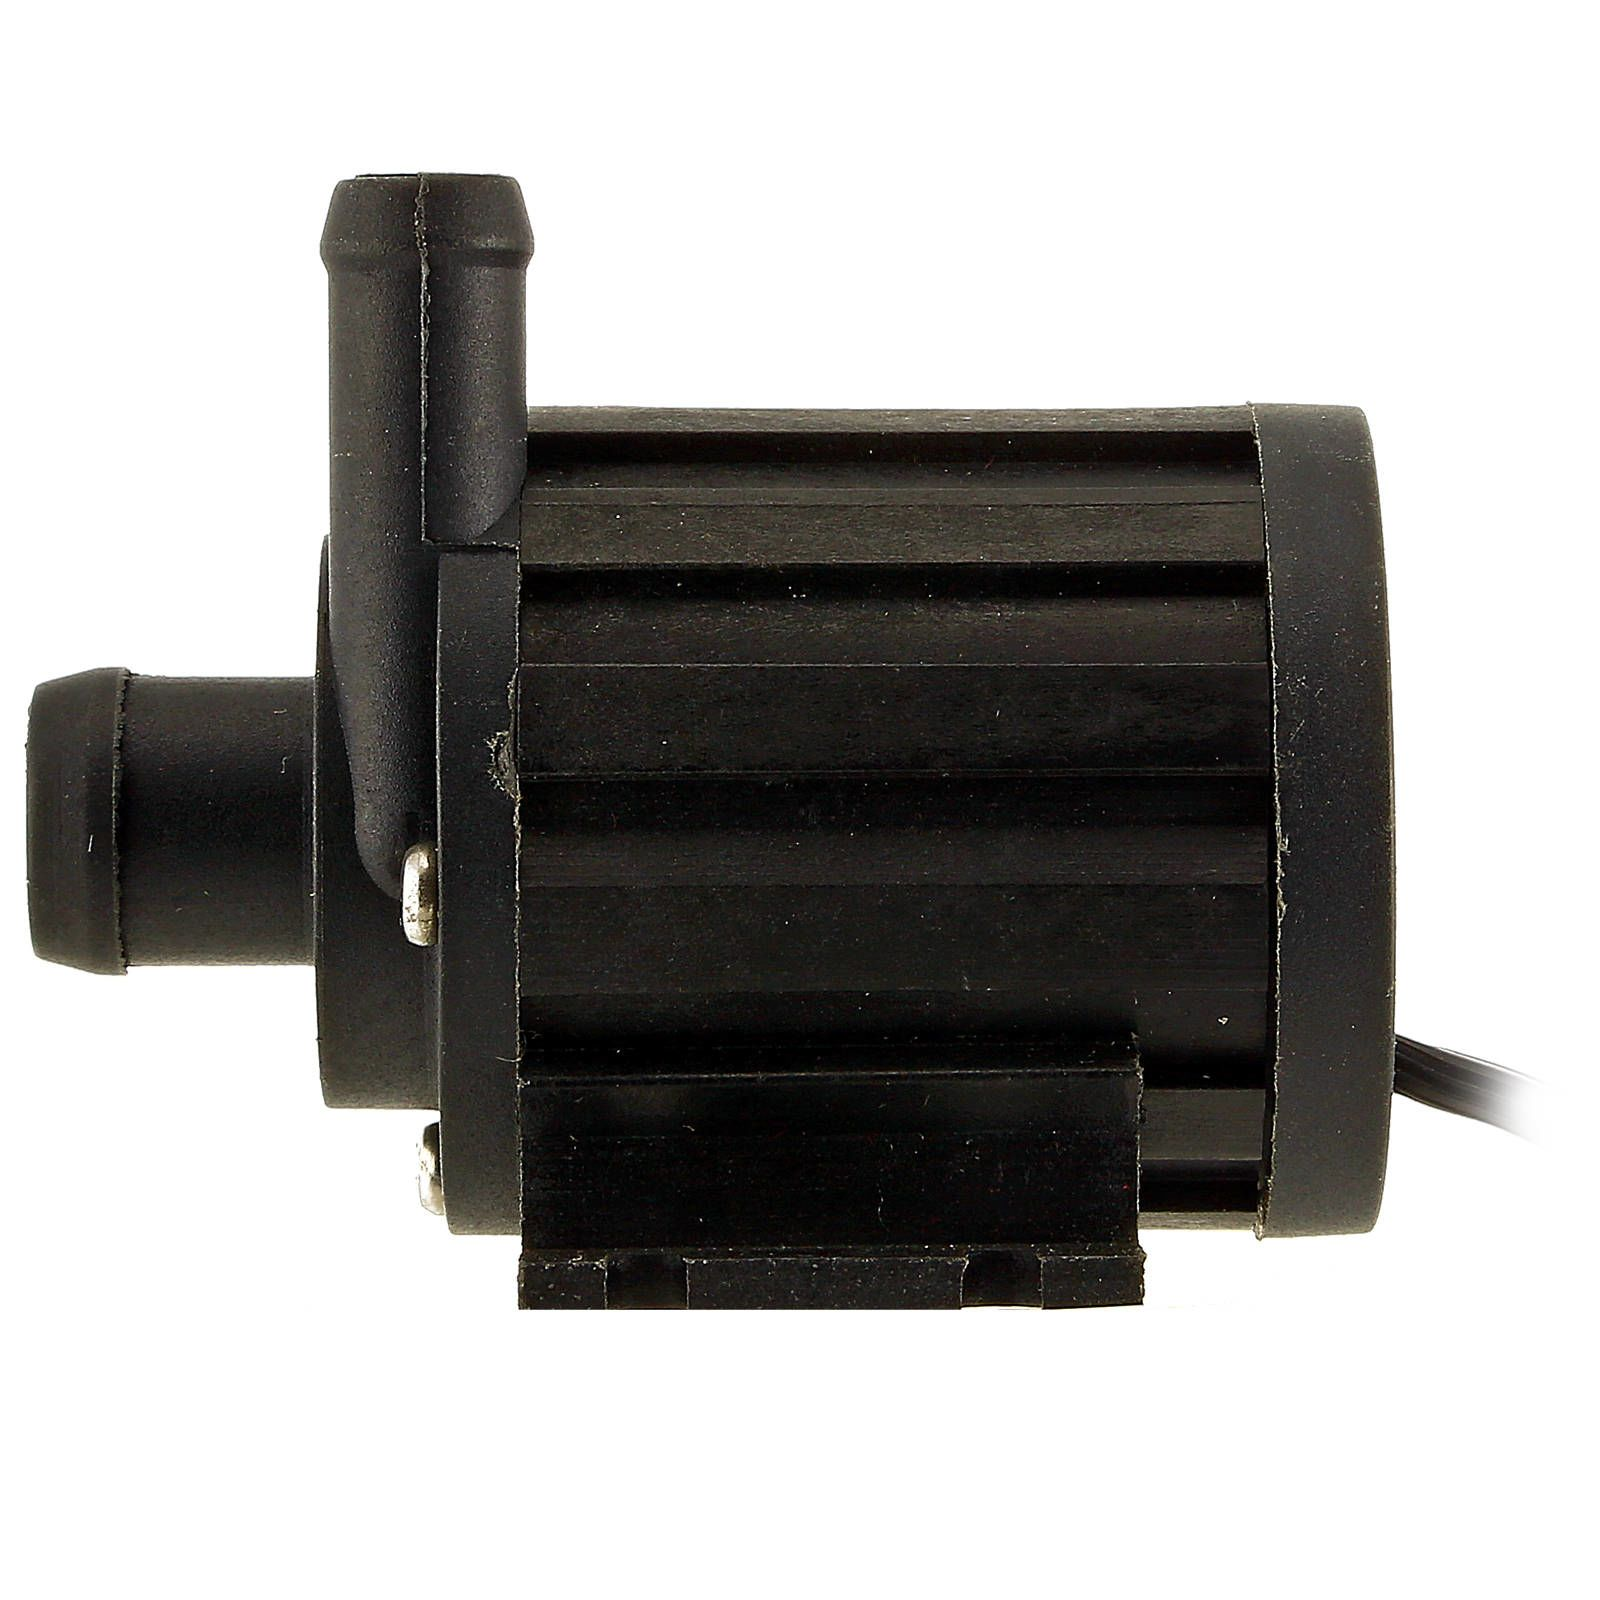 ADA - Replacement pump - for Super Jet external filters